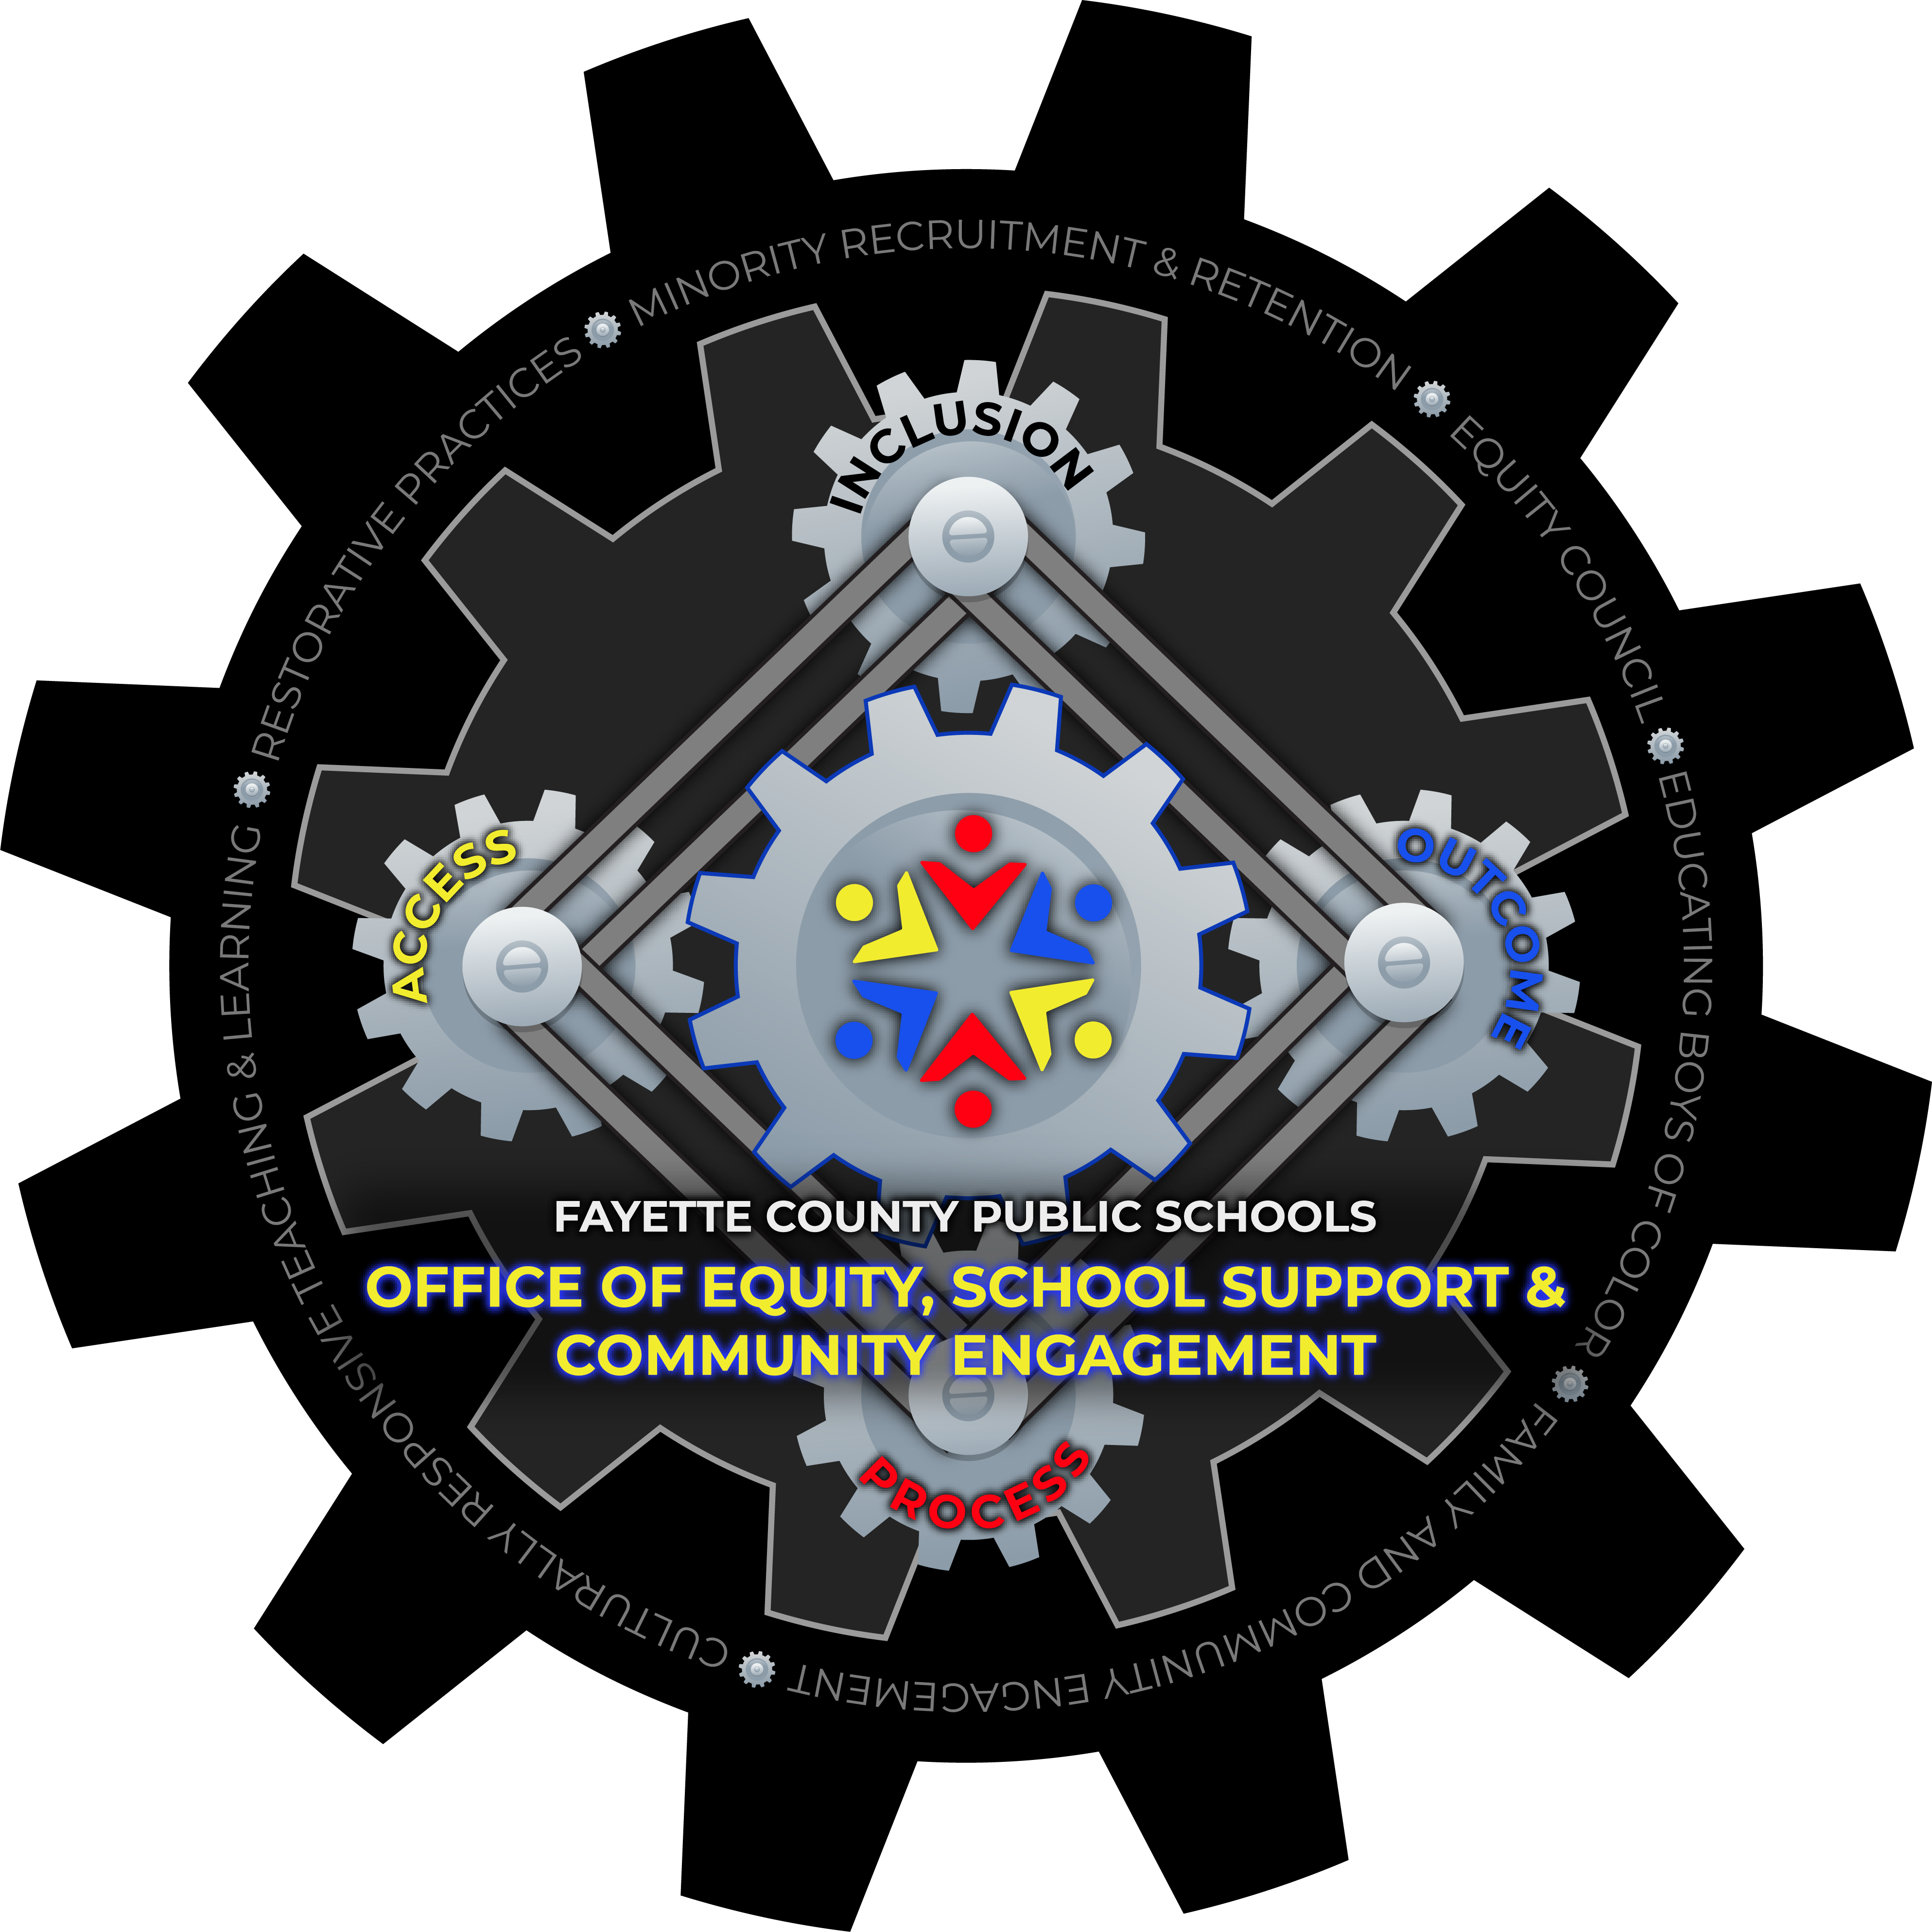 Office of Equity (logo)